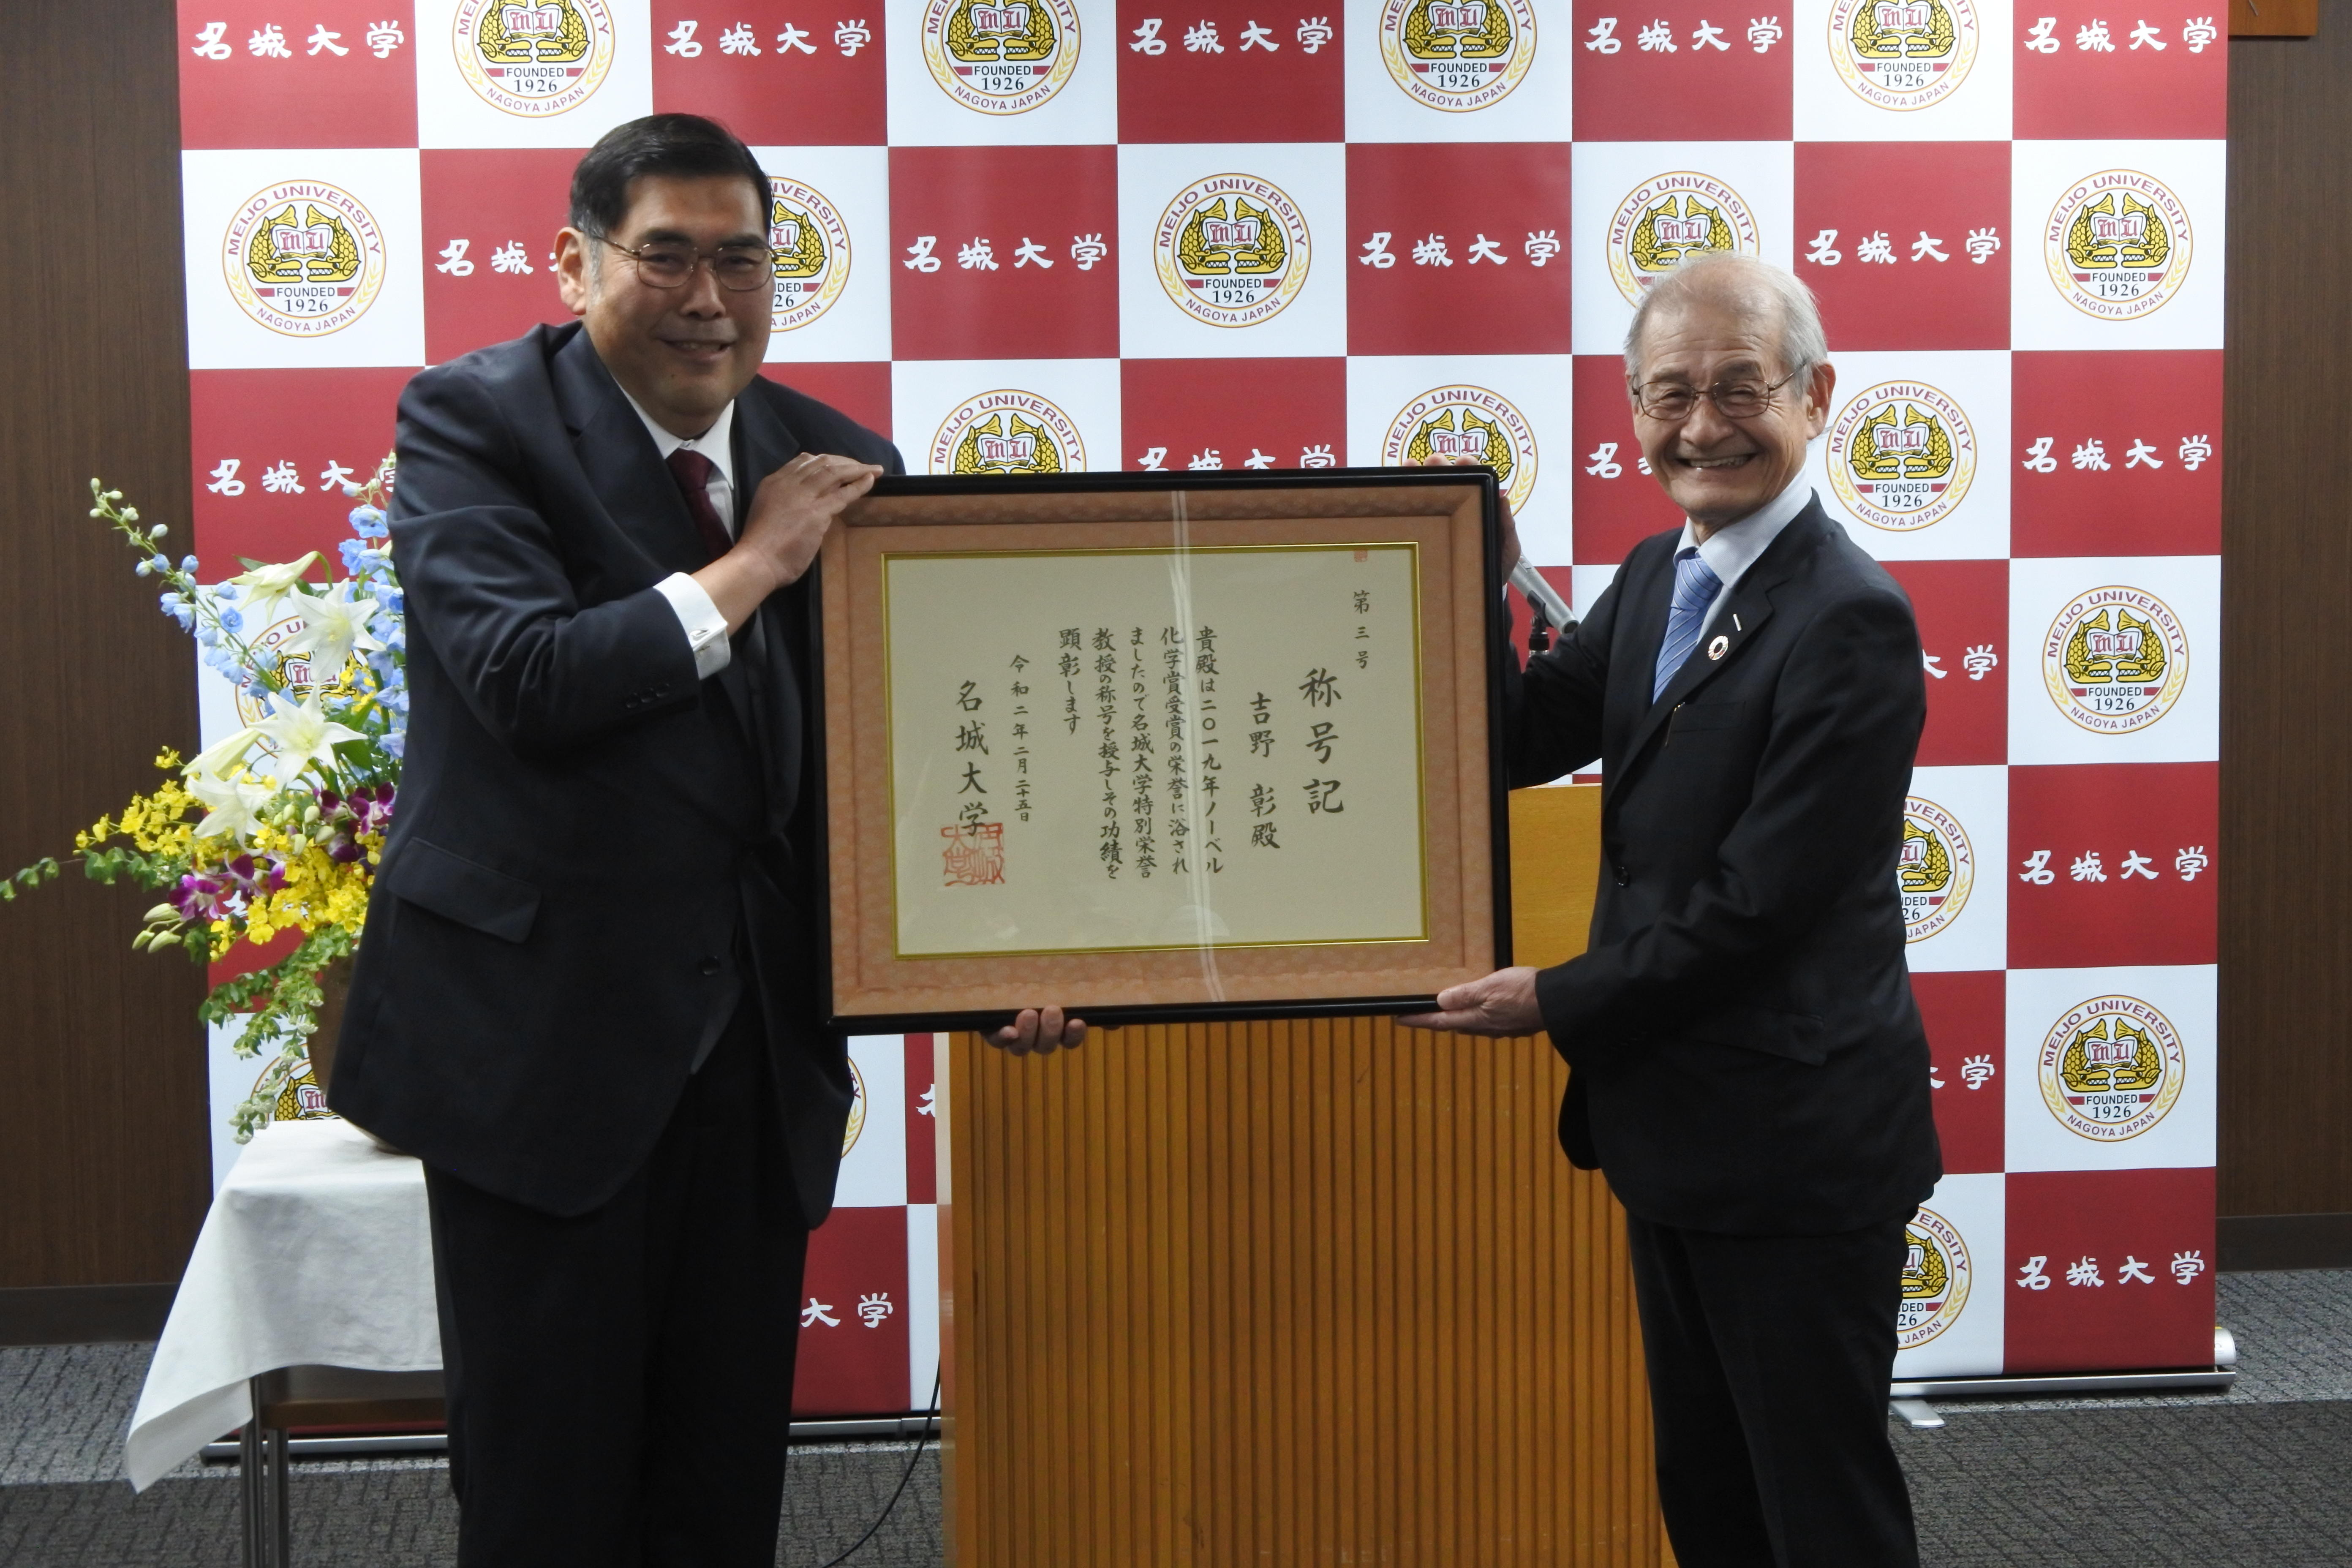 Dr. YOSHINO smiling with his certificate